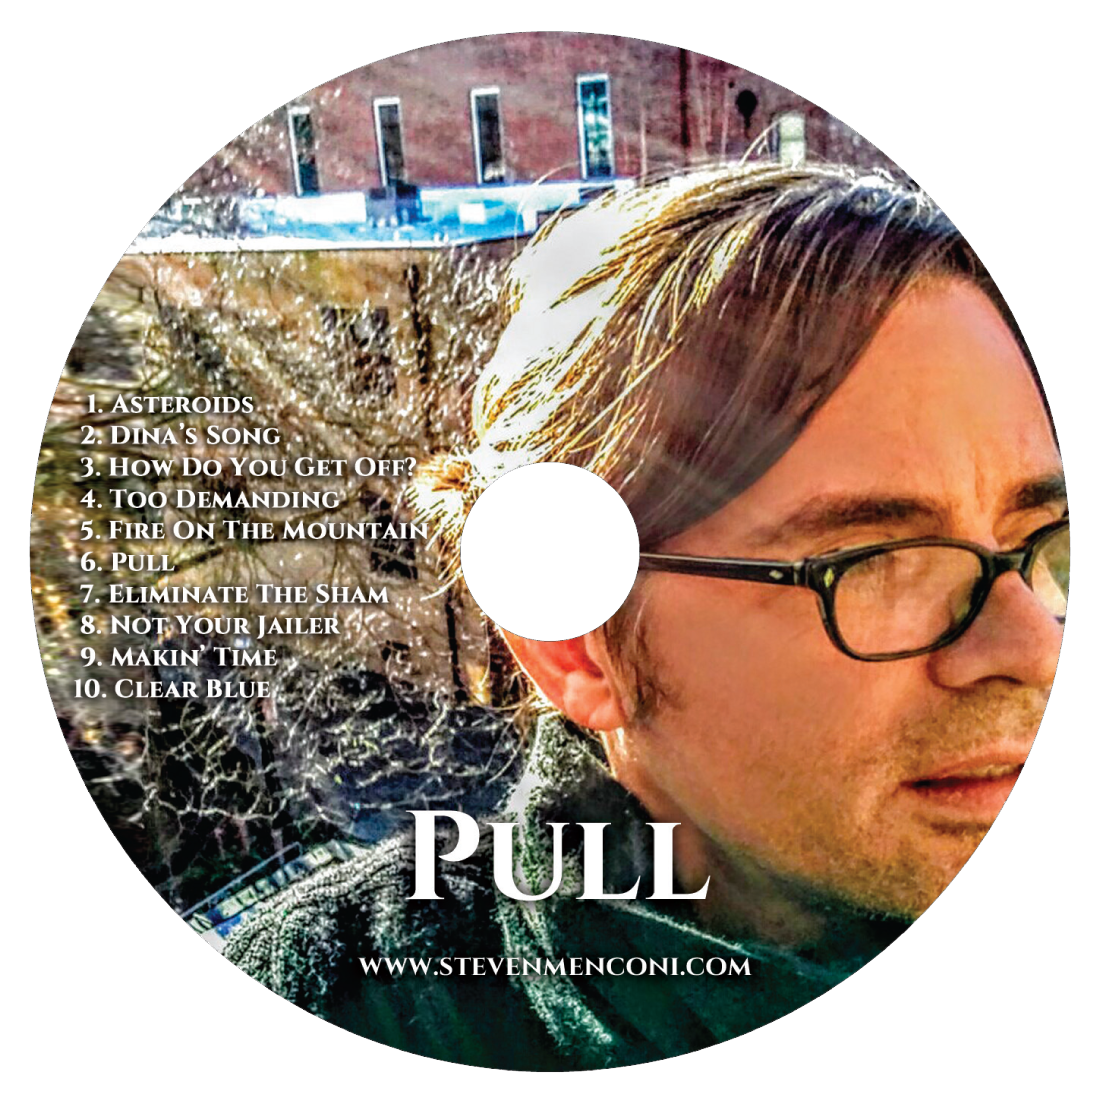 Pull CD - Steven Menconi Band